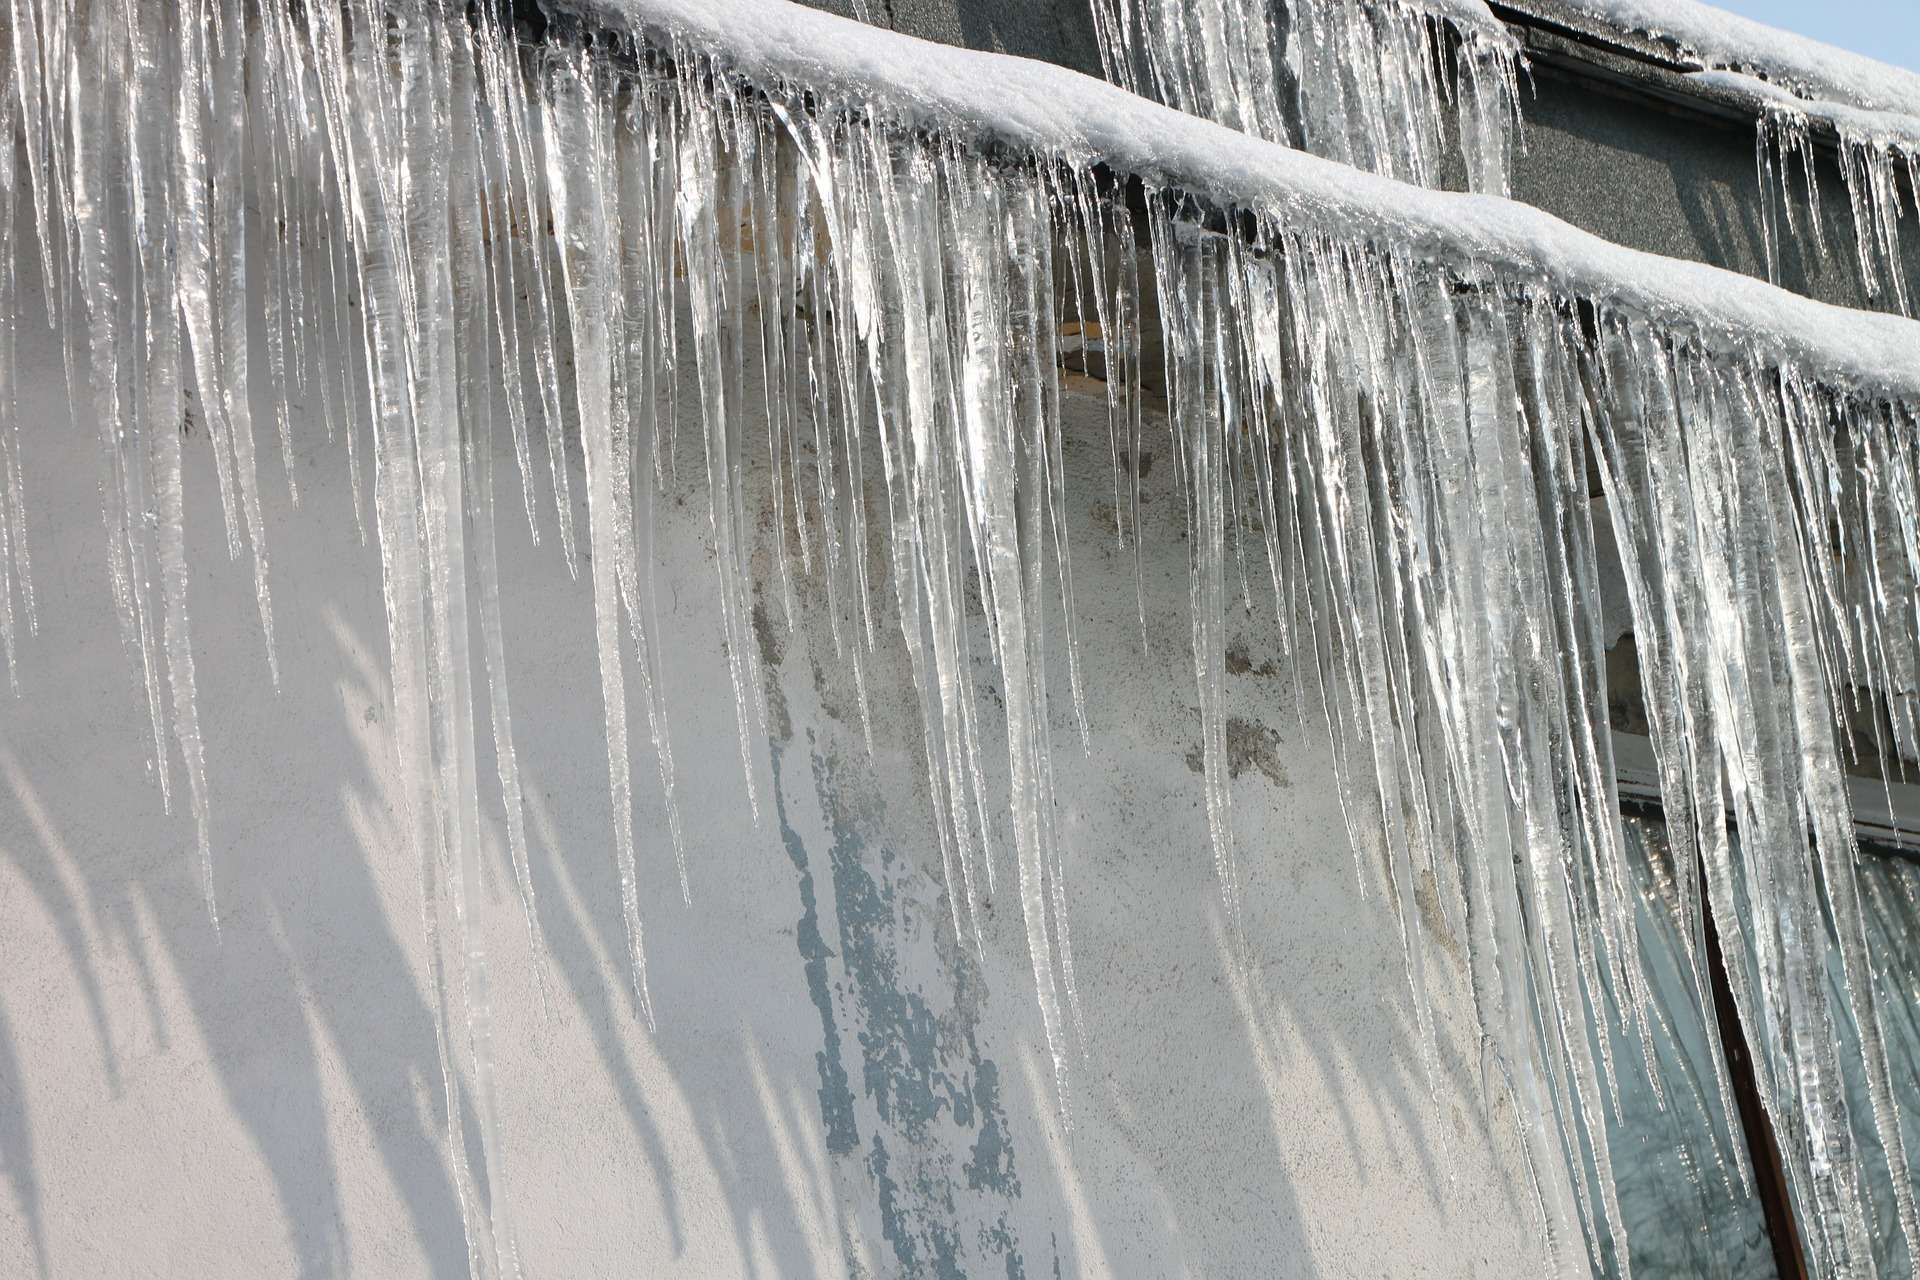 ice dams and icicles formed on a building